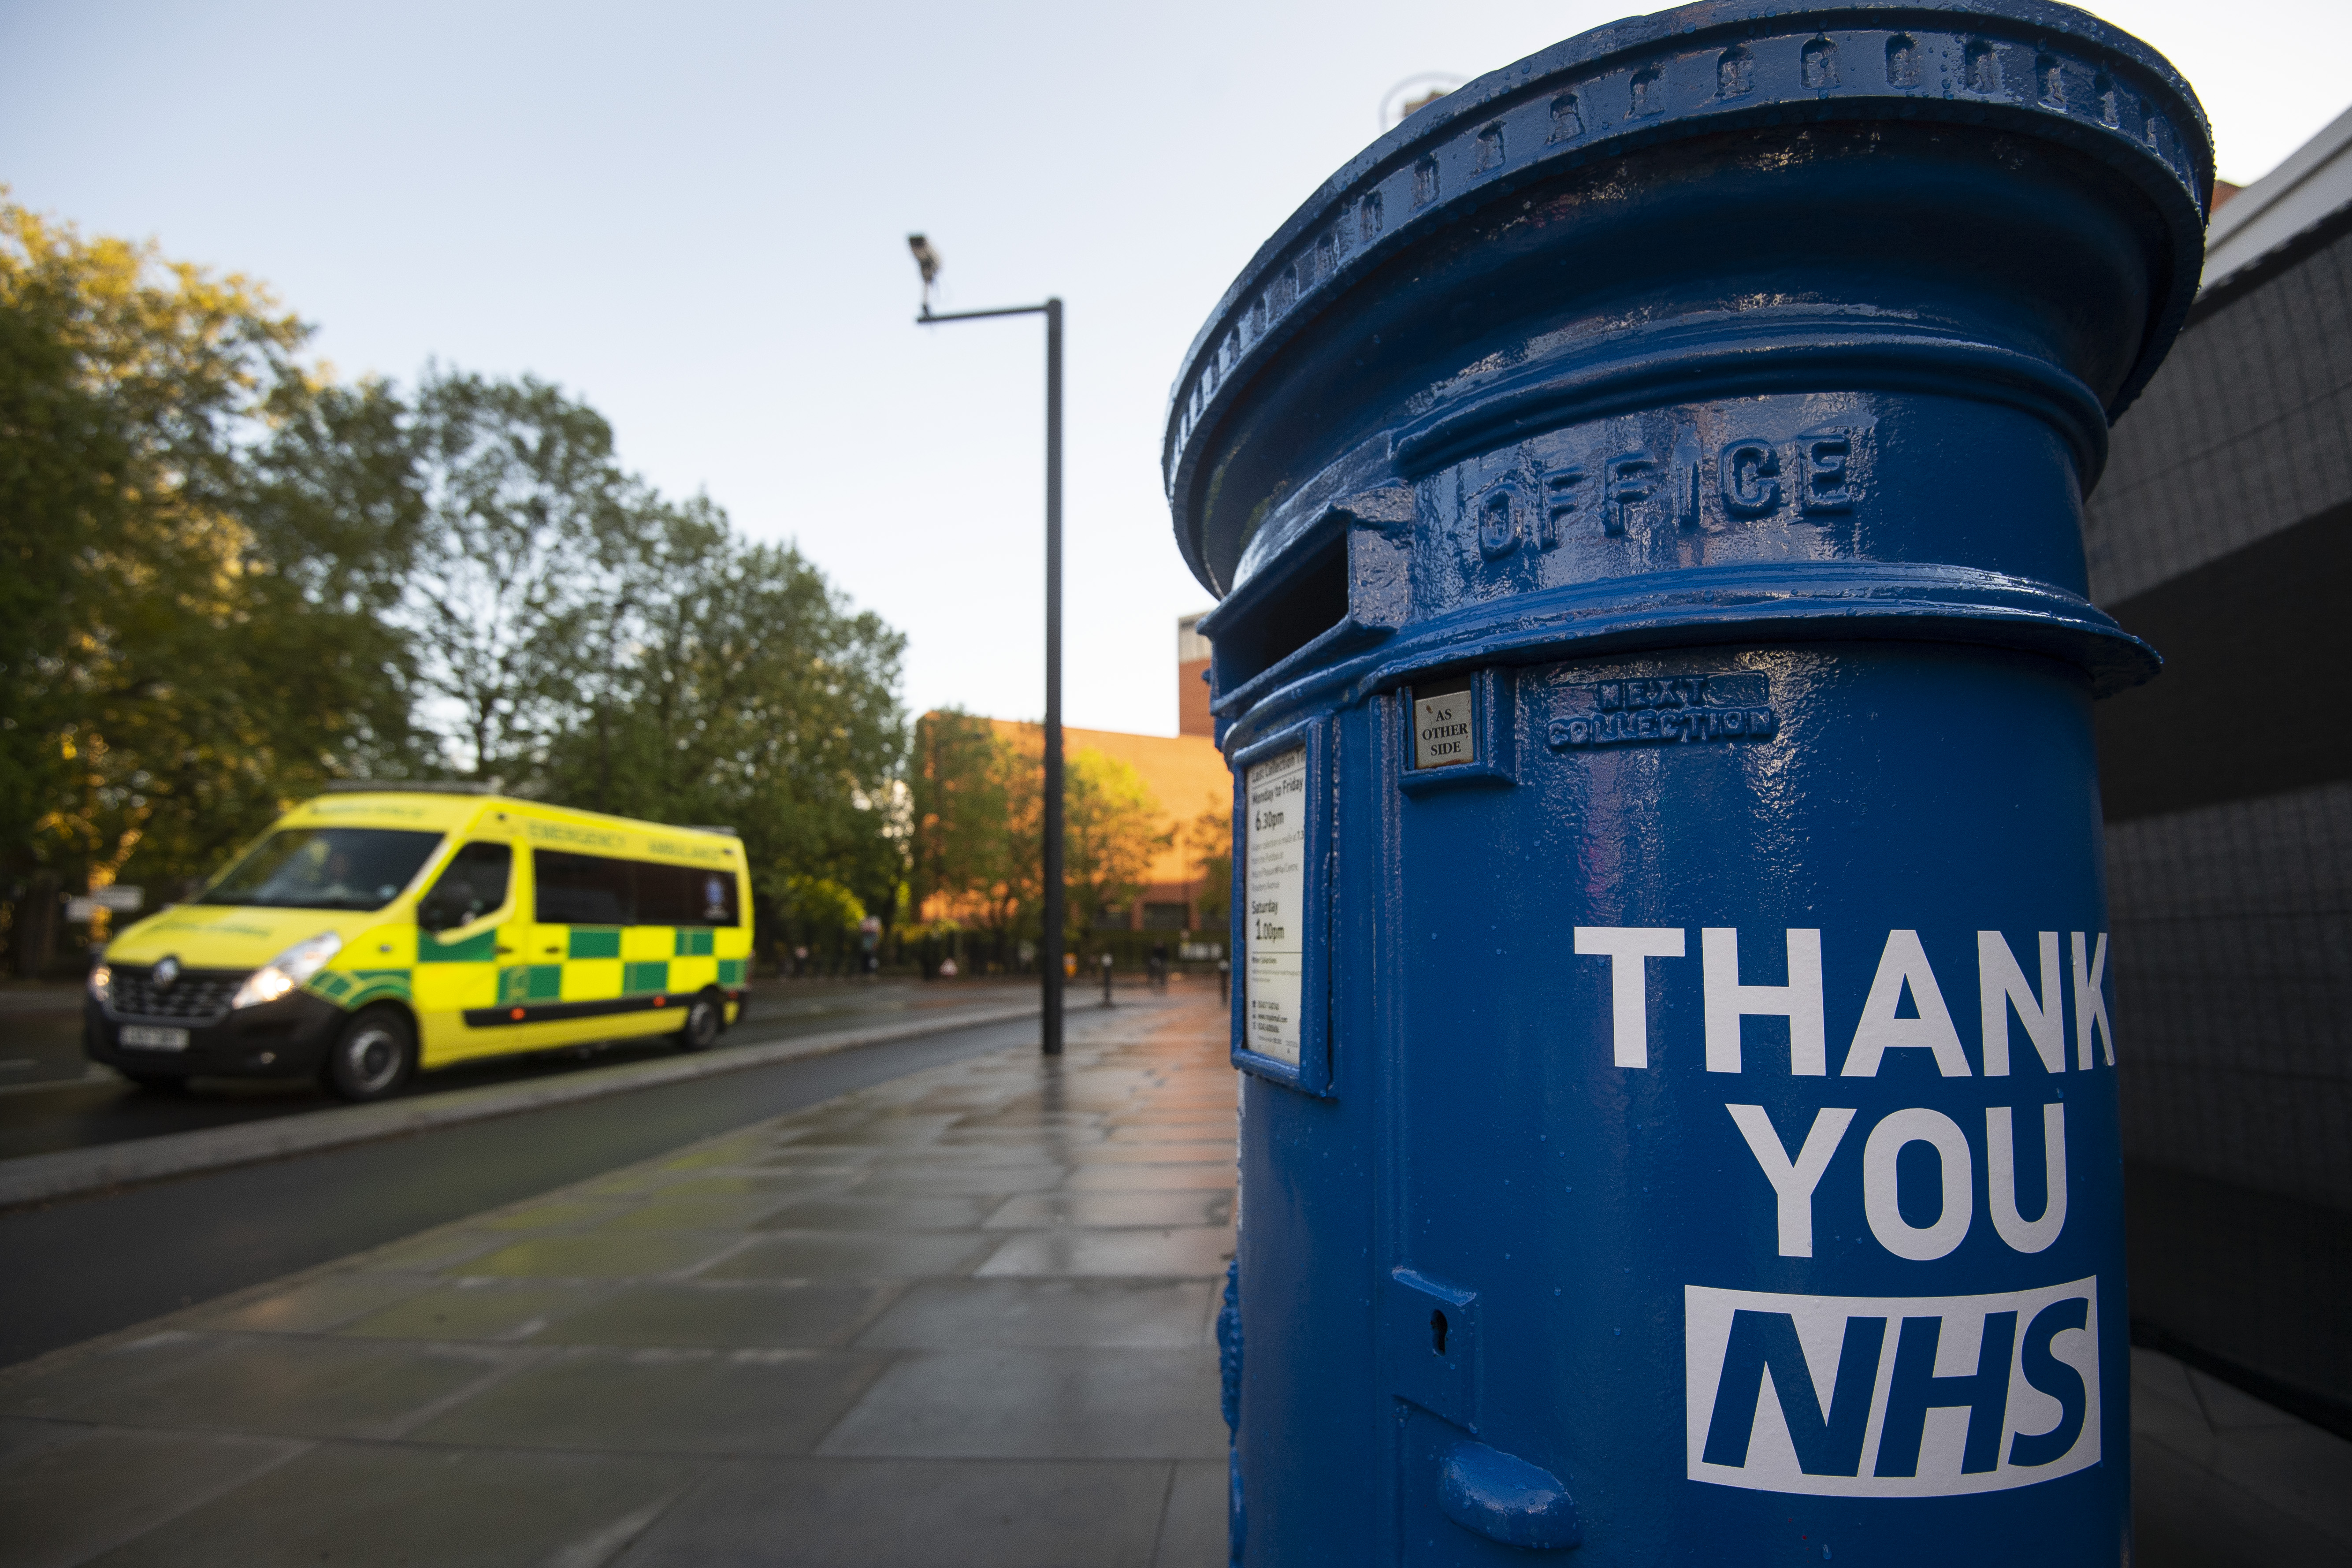 A blue postbox in support of the NHS outside St Thomas's Hospital in central London as the UK continues in lockdown to help curb the spread of the coronavirus.